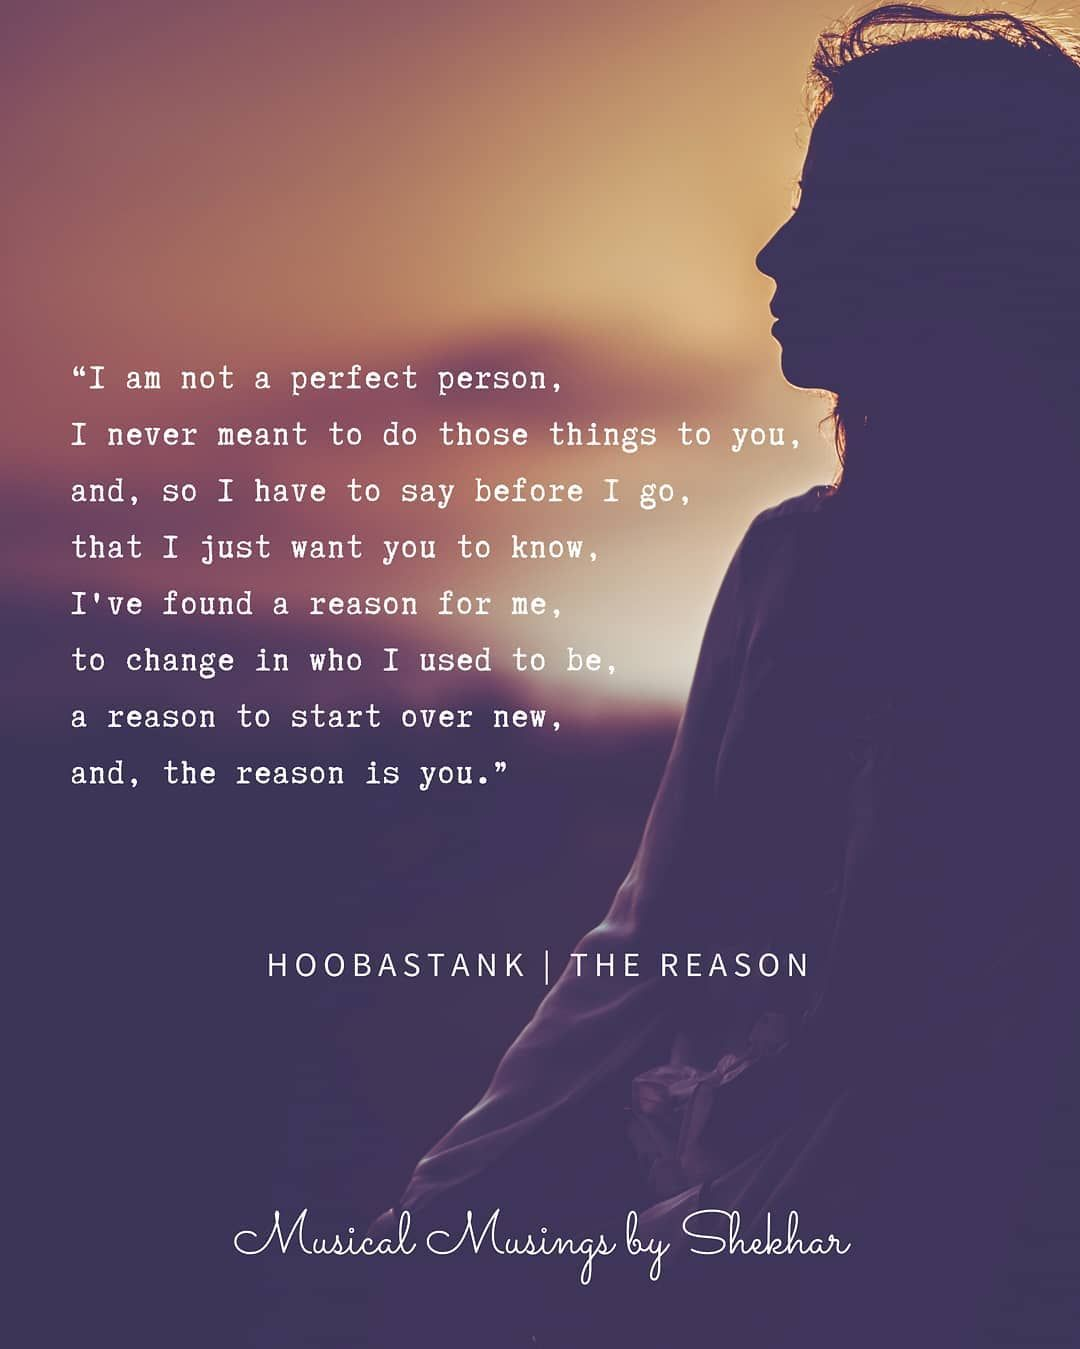 Watch The Best Youtube Videos Online Hoobastank The Reason Beautiful Lyrics Had A Fight With Your Loved O Beautiful Lyrics Love Songs Lyrics